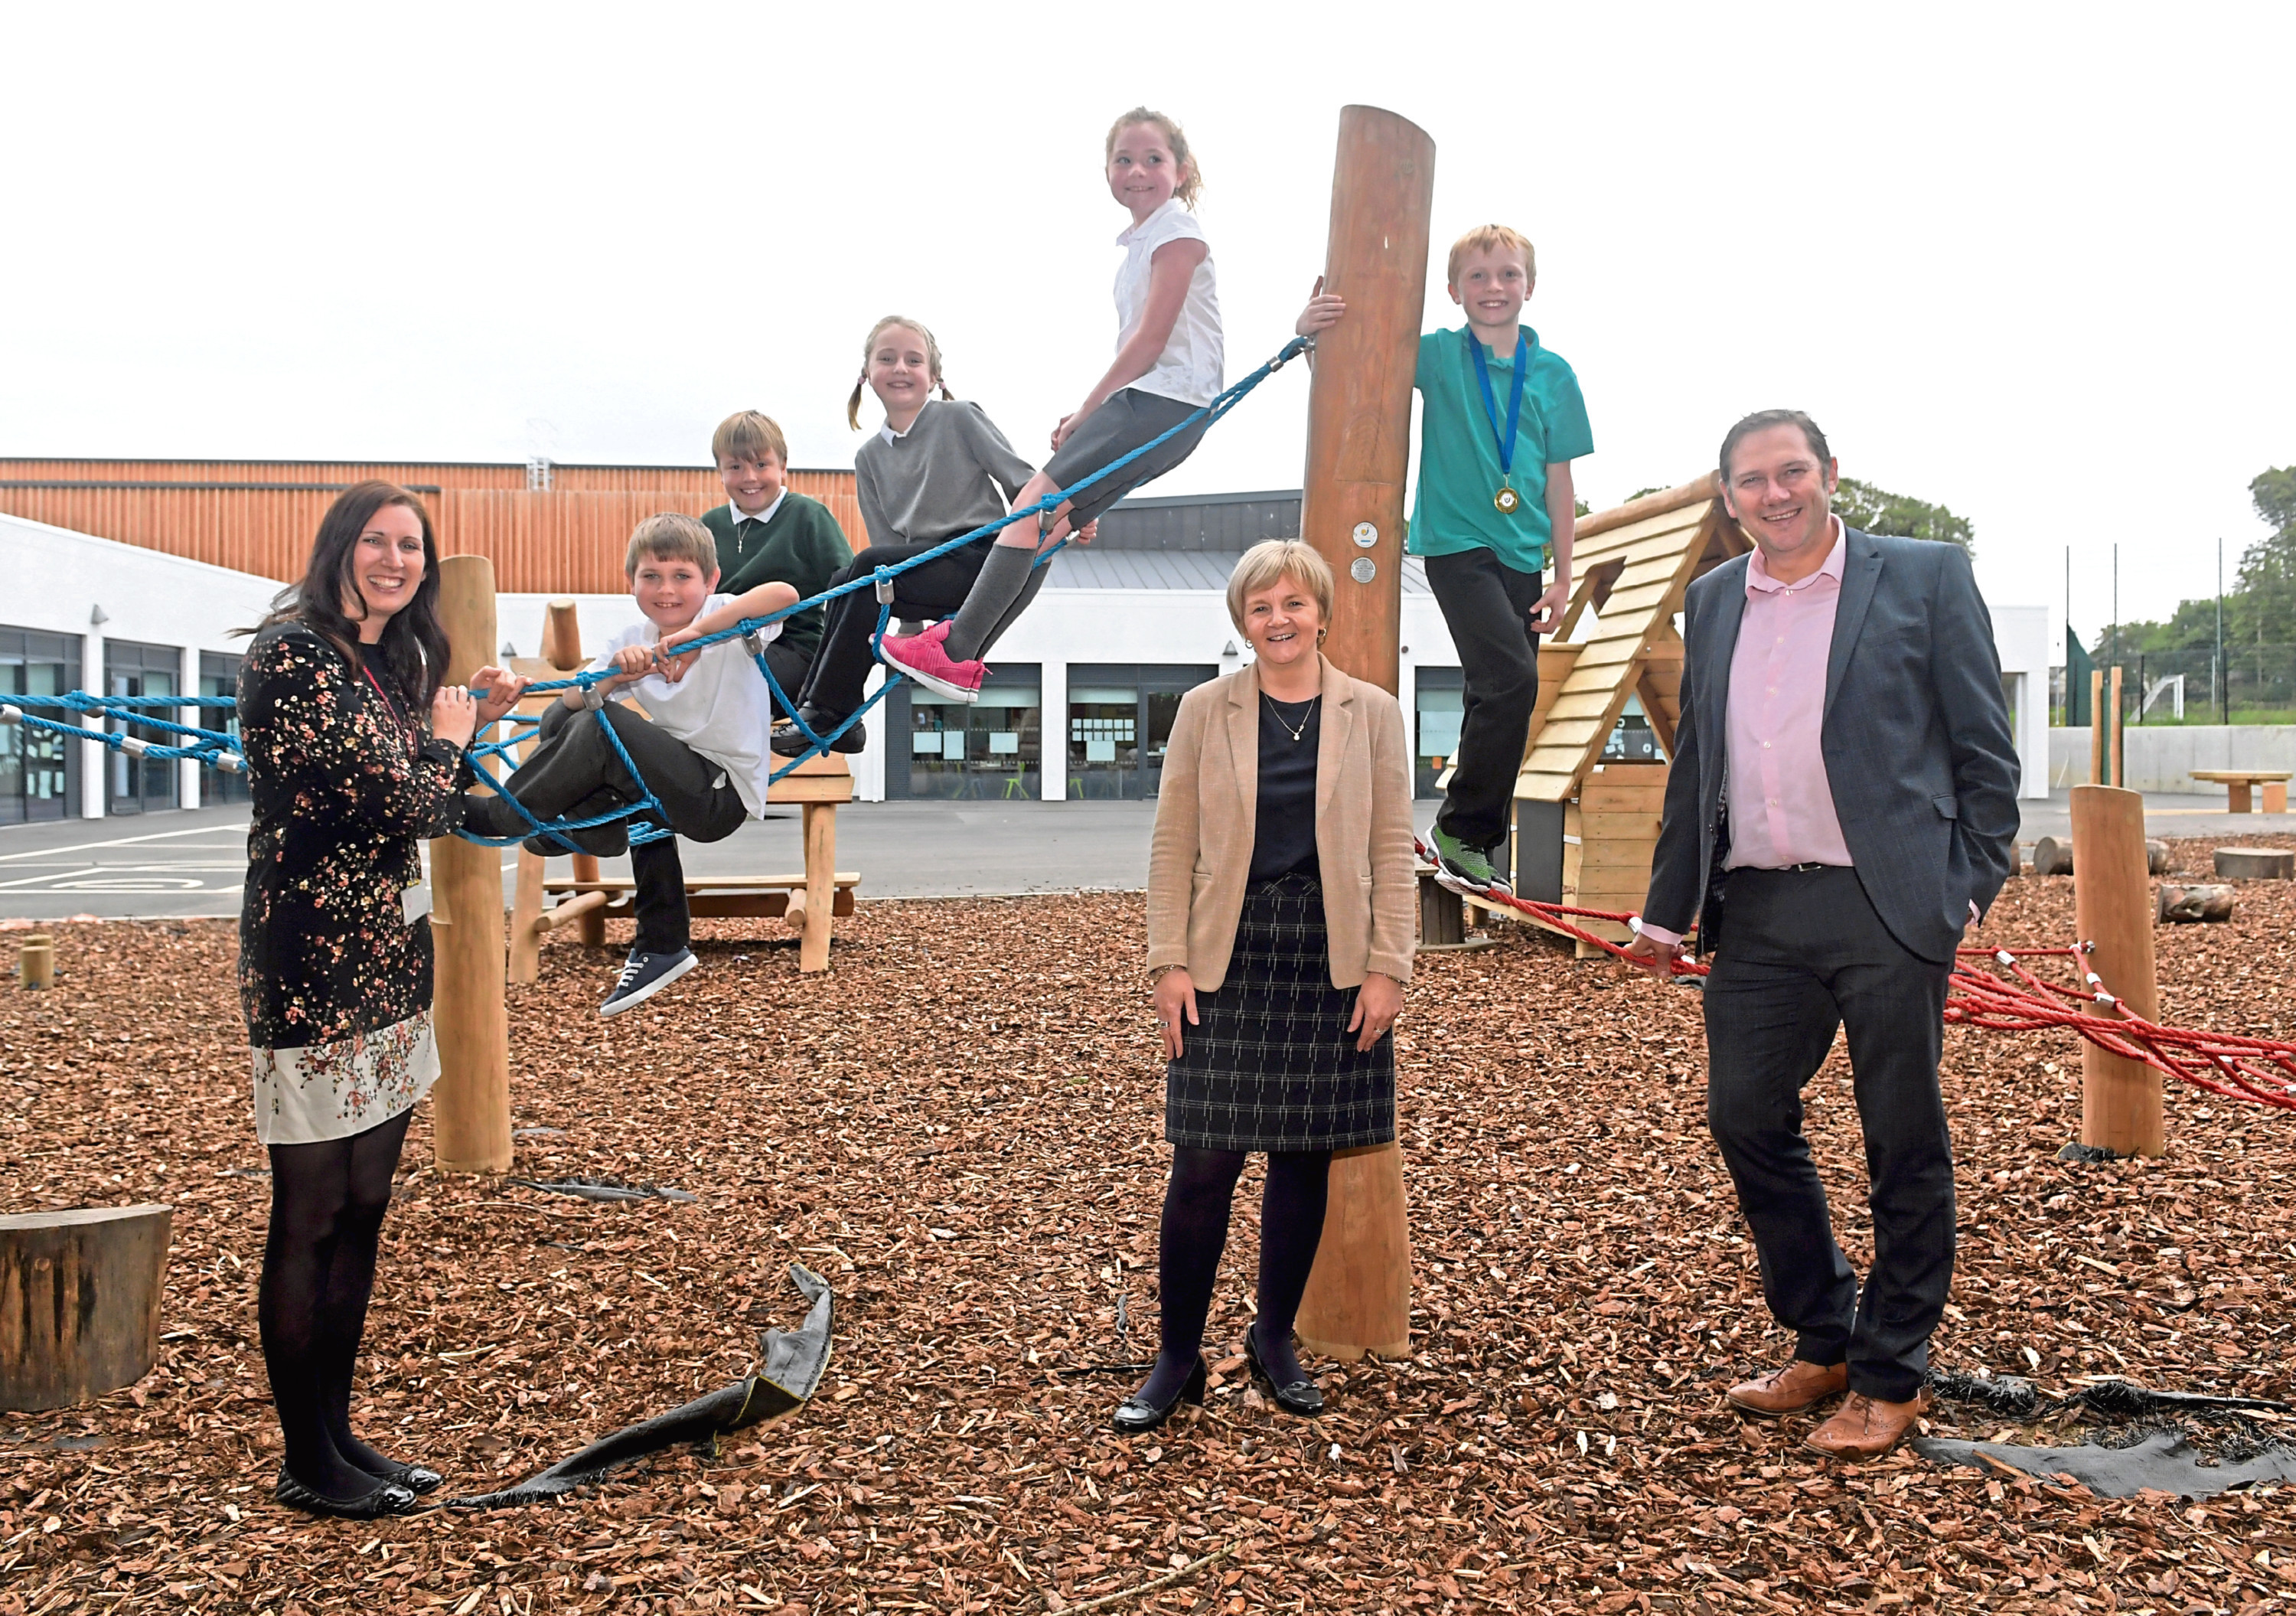 The new Stoneywood Primary School. From left, Headteacher Gael Ross with Council Co Leaders Jenny Laing and Douglas Lumsden and pupils, Carter Pearson, Samuel Paczoski, Mia Pritchard, Keira Duncan and Ben Morrice. 04/09/18. Picture by KATH FLANNERY